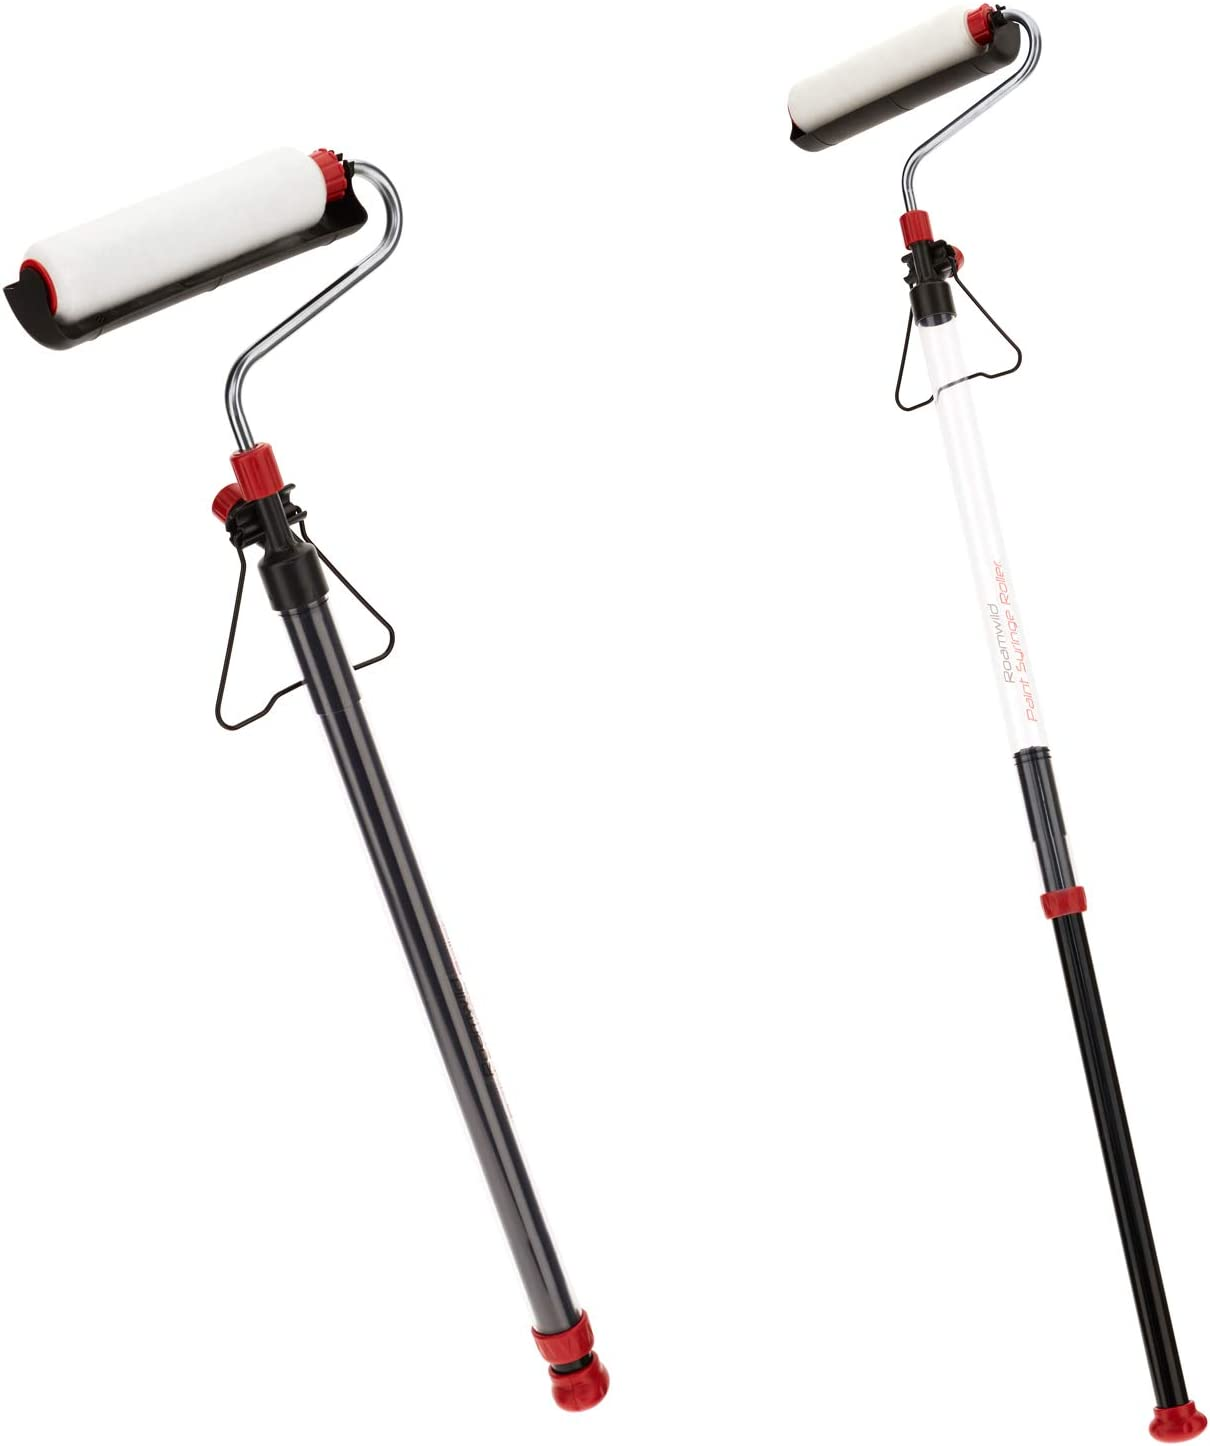 Long Reach Extendable Paint Syringe Roller Easy Decorating for Interior and Exterior Walls /& Ceilings